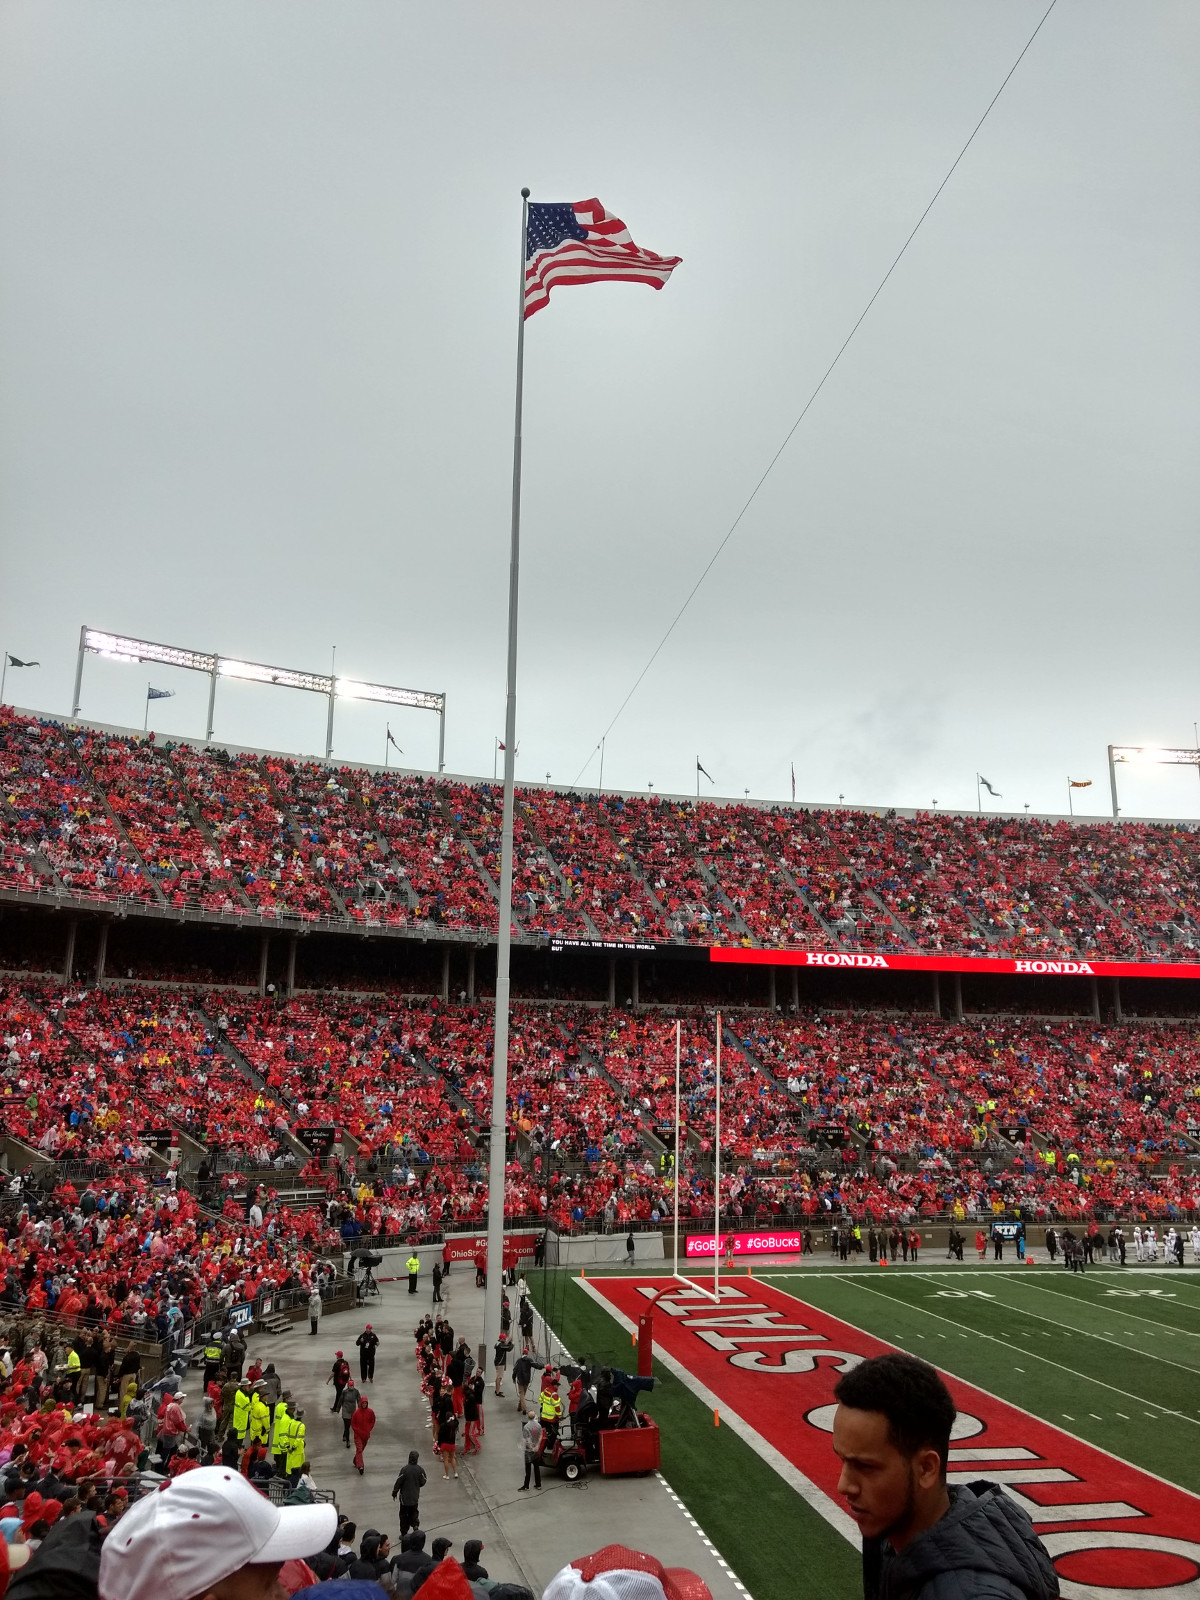 The flag of the USA in Ohio Stadium